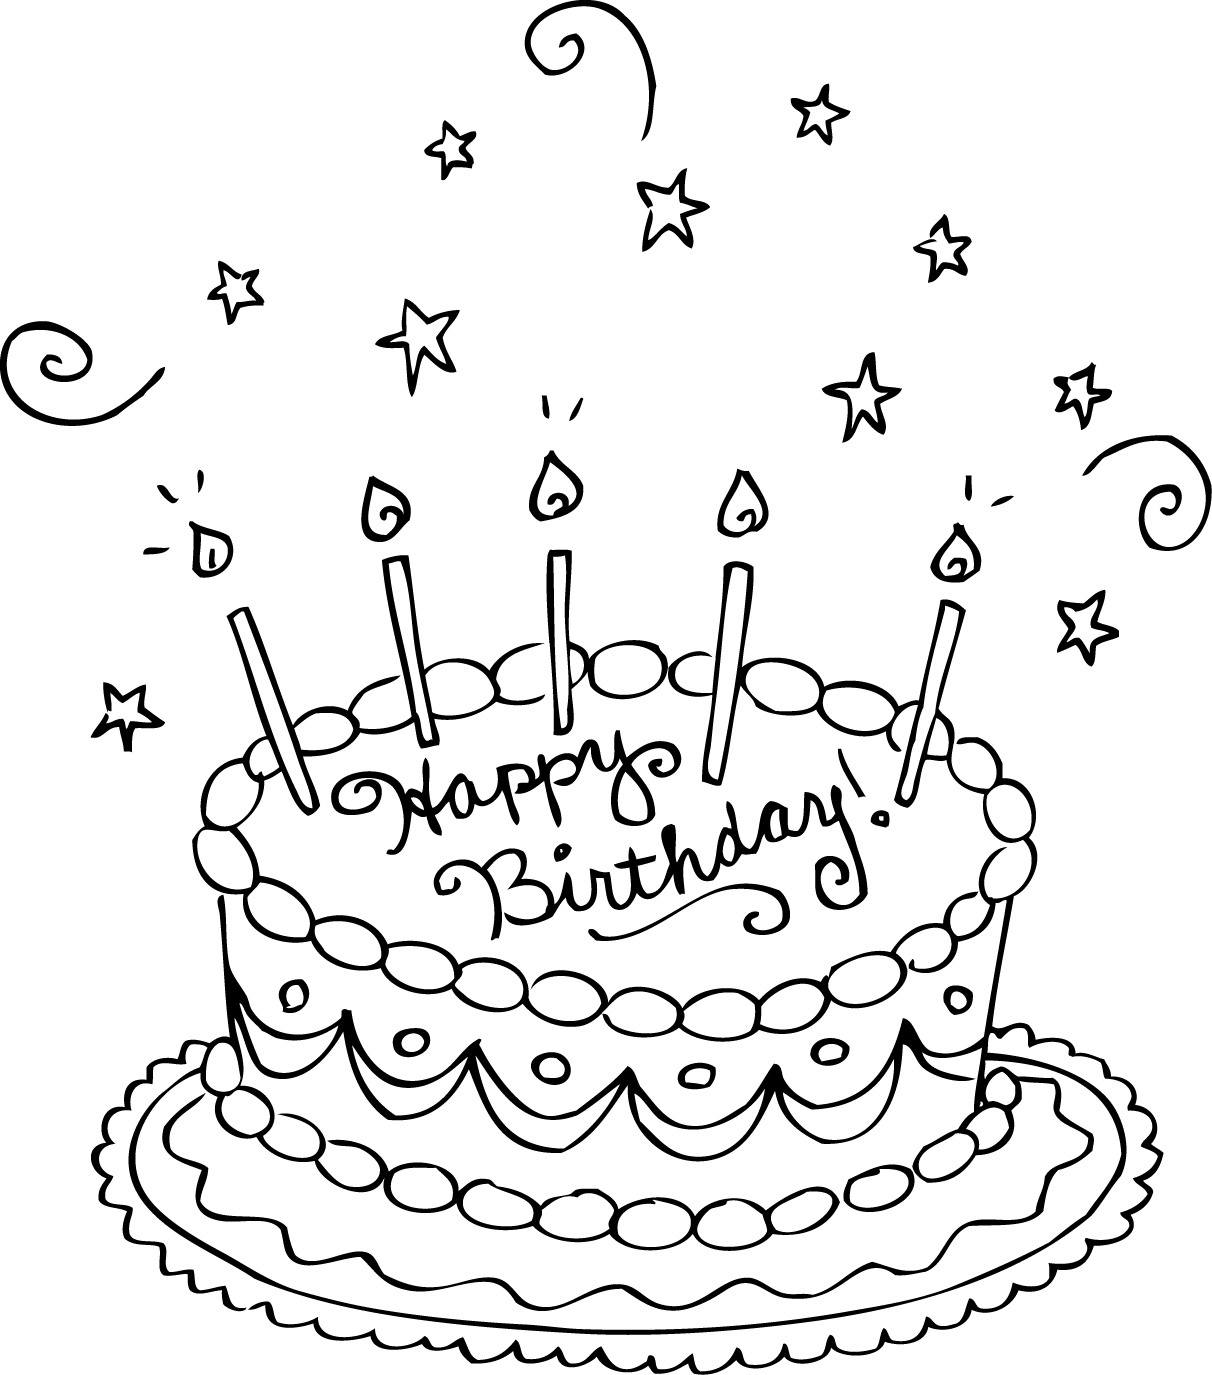 Free Printable Birthday Cake Coloring Pages For Kids - Free Printable Birthday Cake